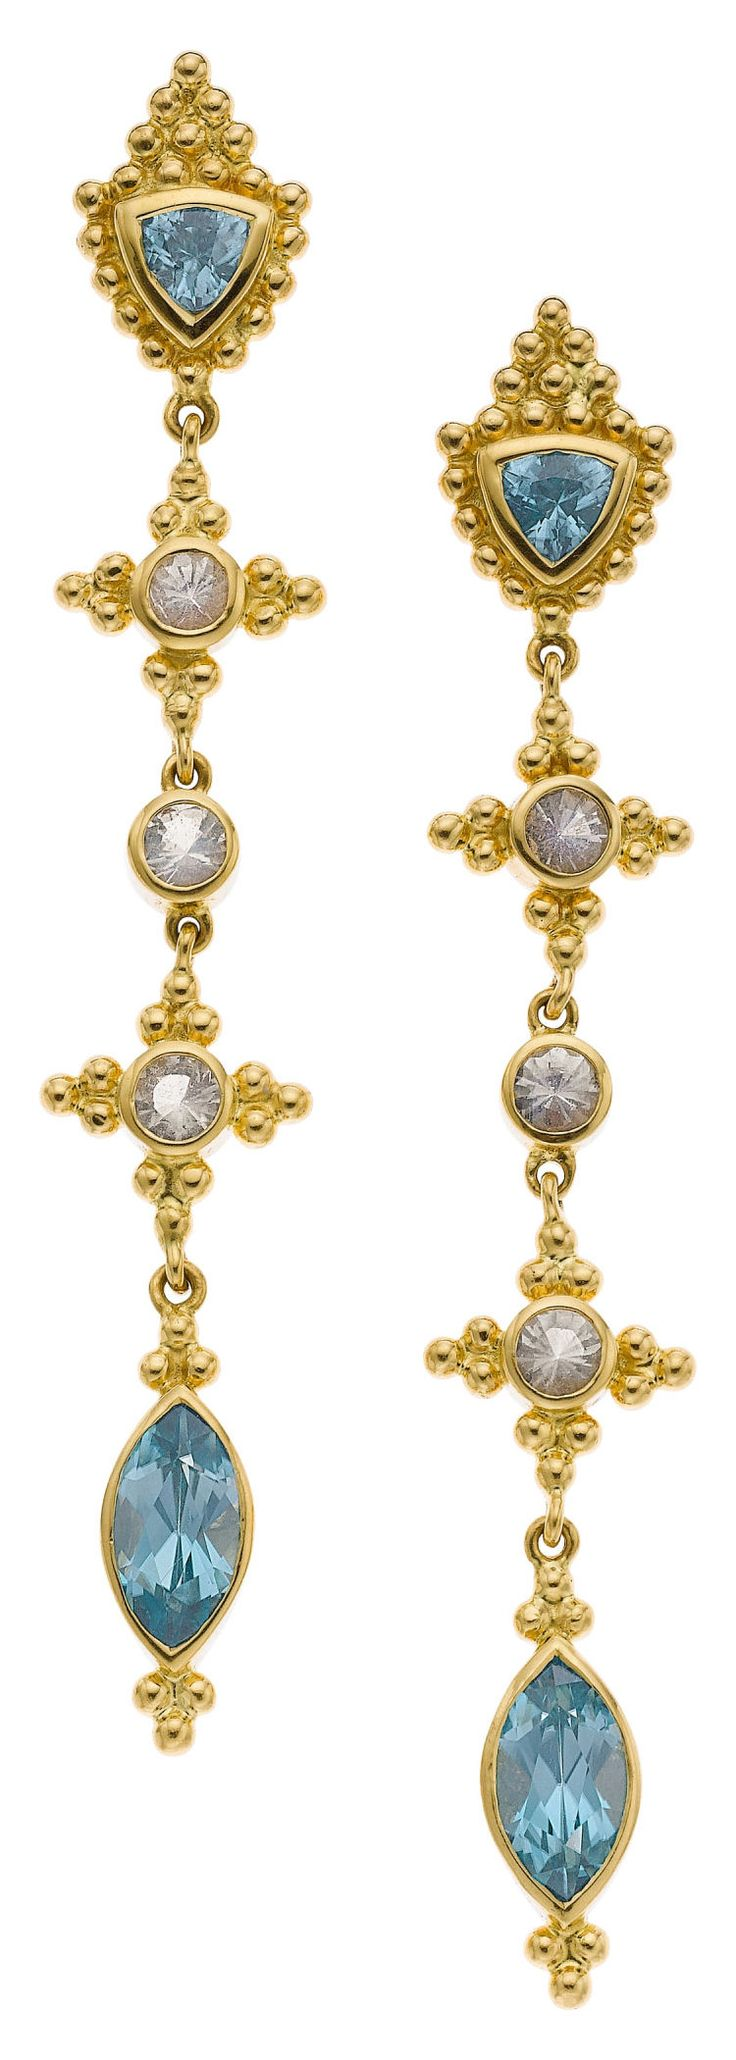 Paula crevoshay zircon moonstone gold earrings 18k gold with 3 22 carats total weight of